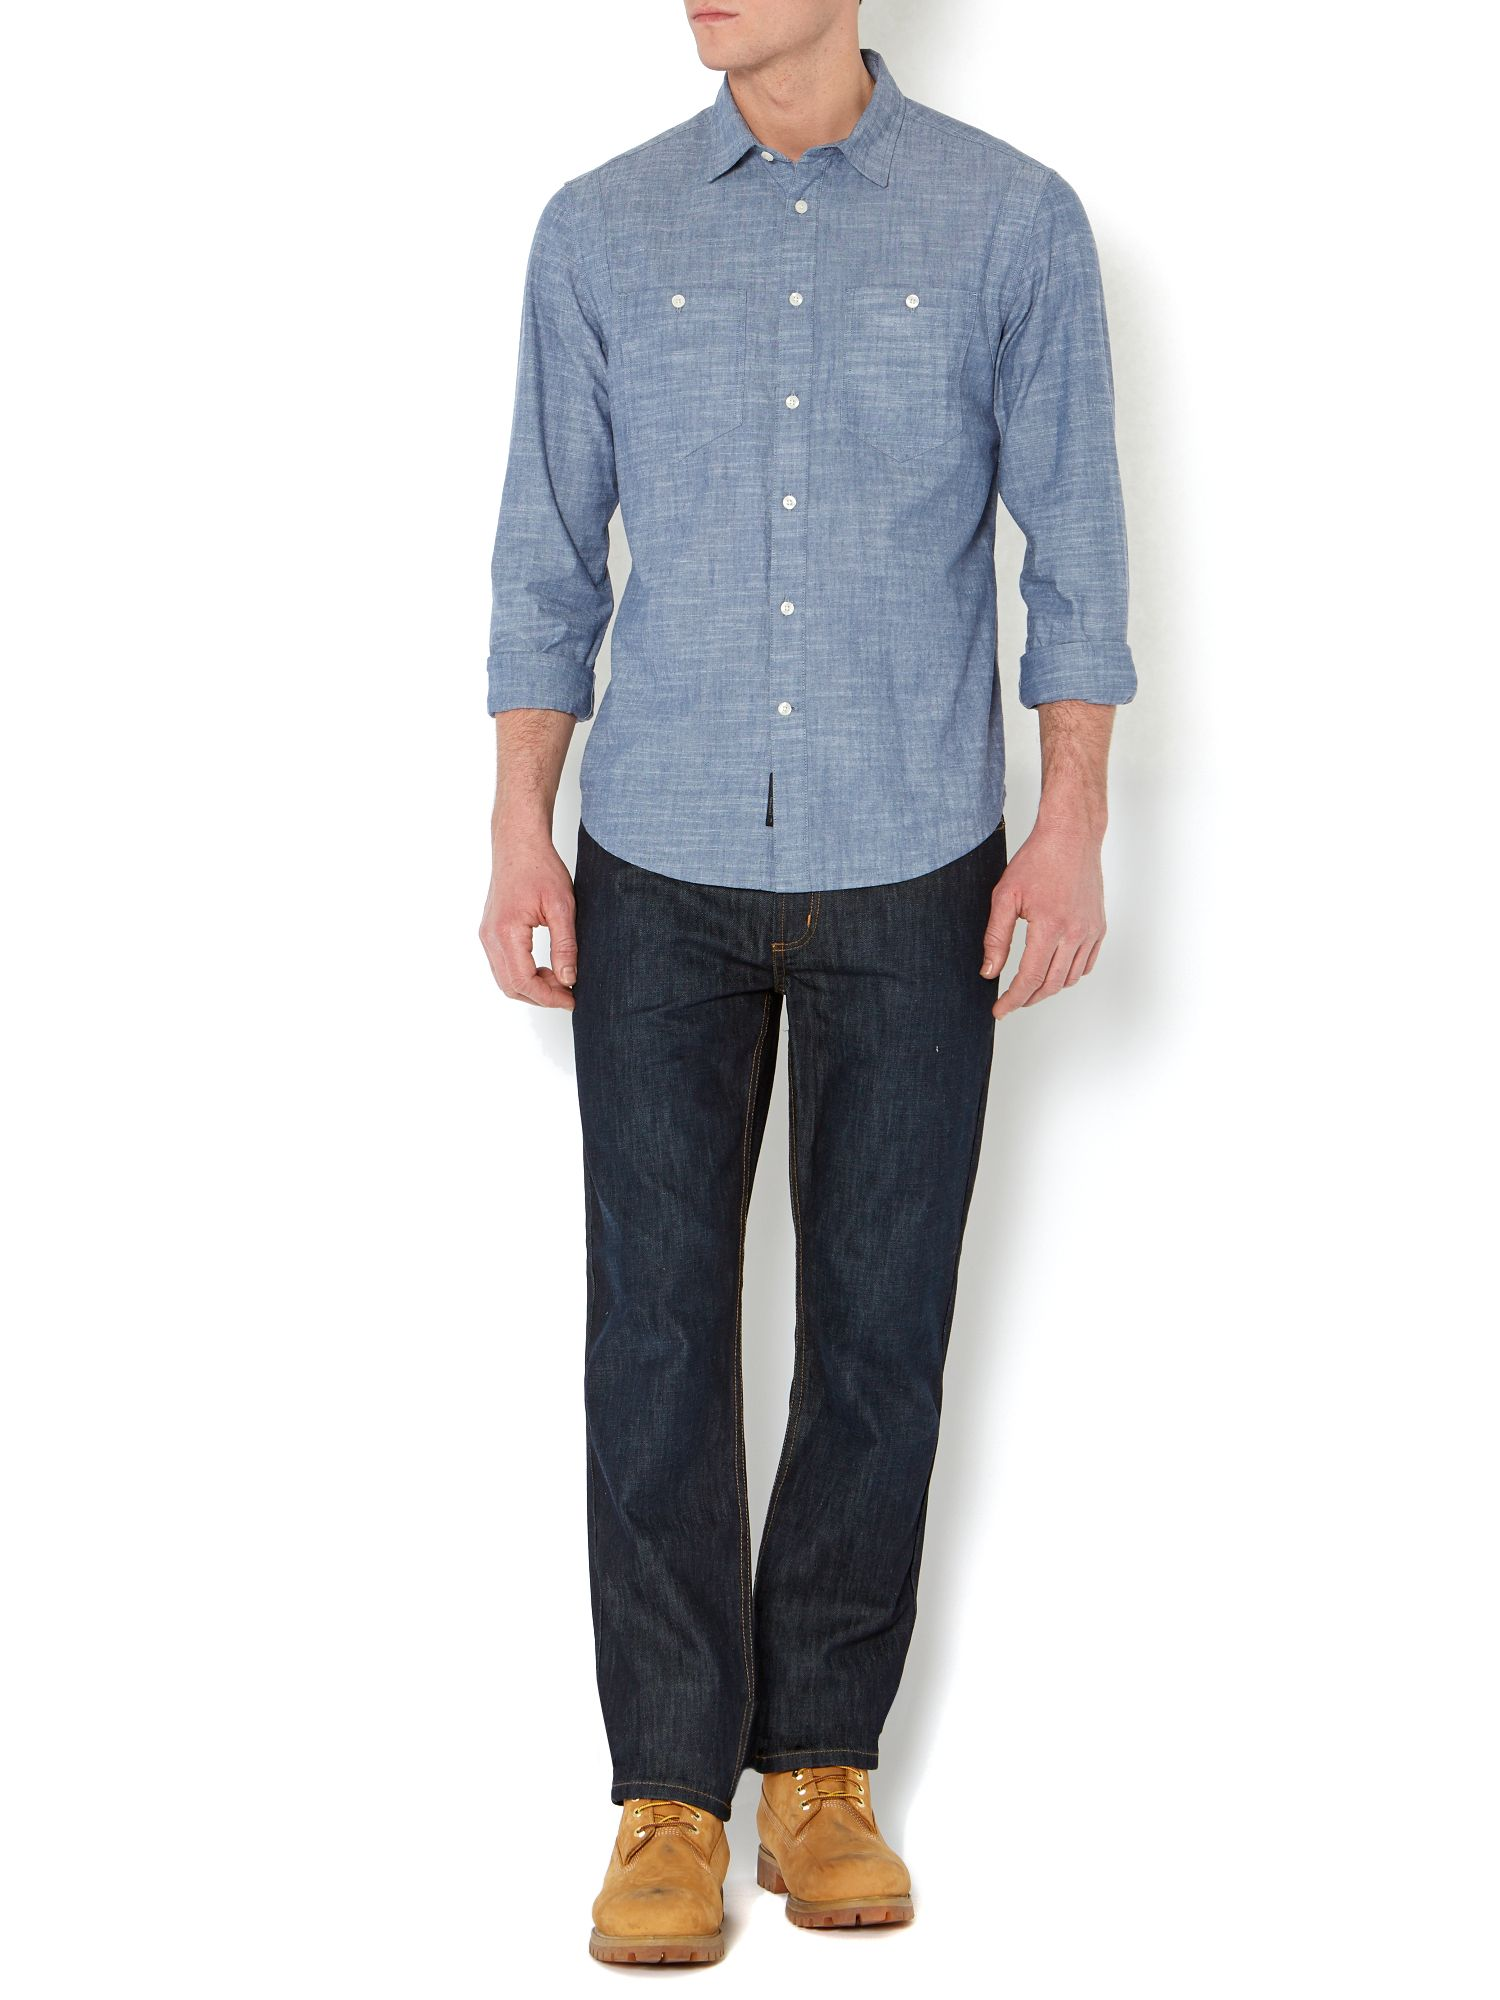 Landon chambray shirt